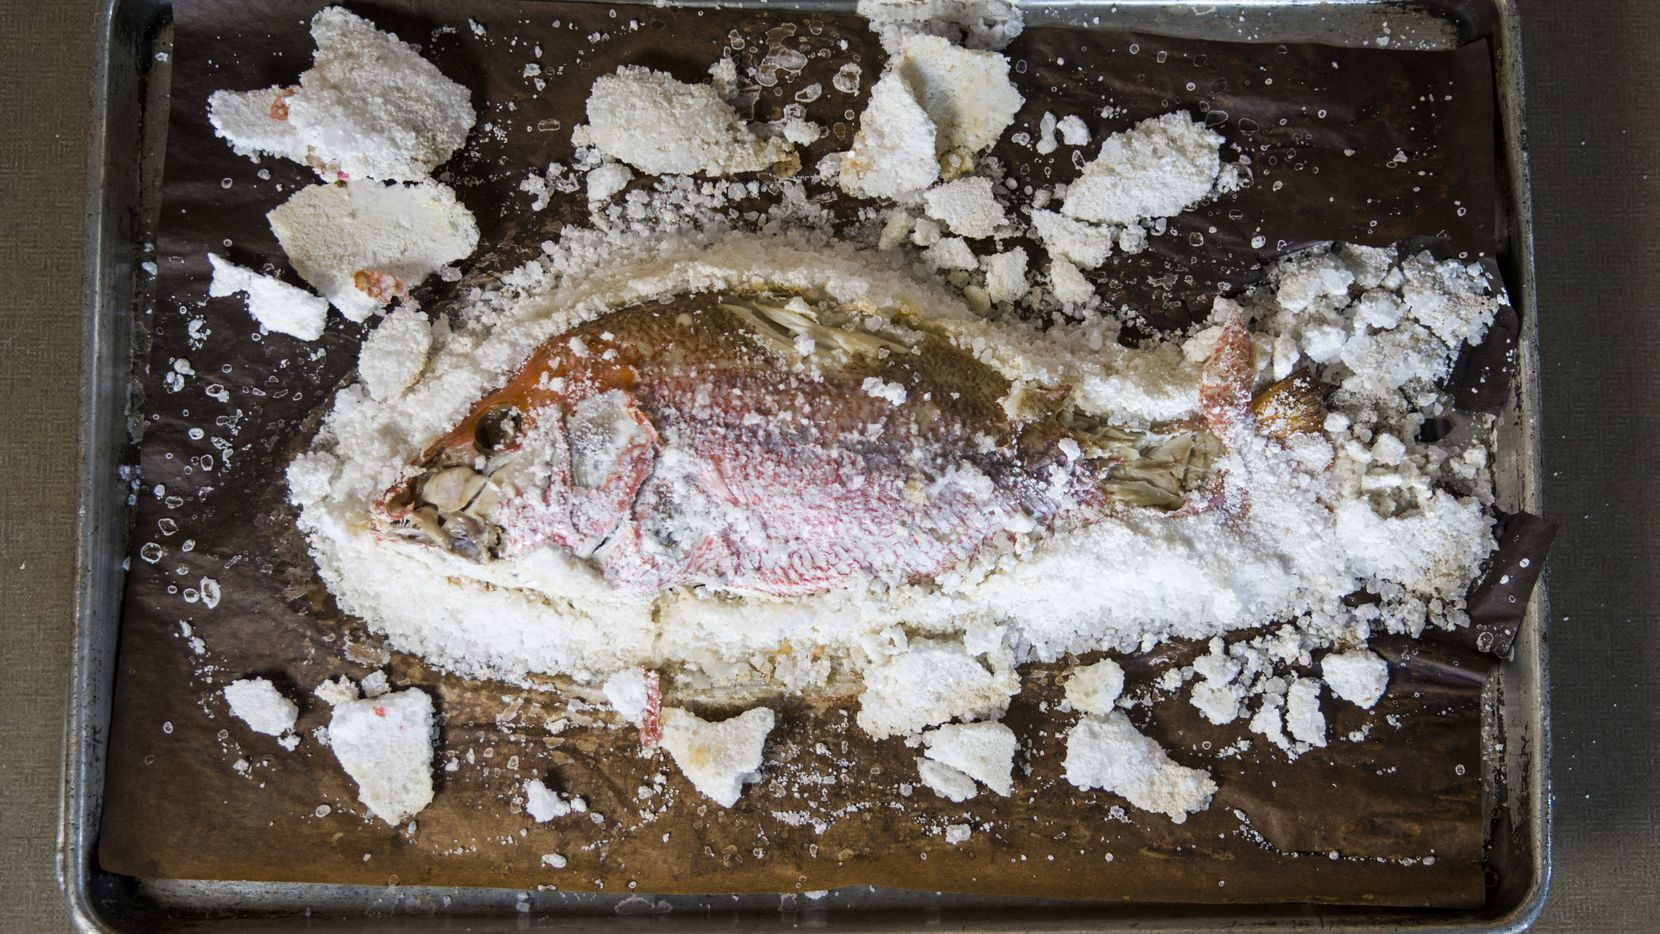 A baked Salt Crusted Red Snapper on Nov. 14, 2019 at Sea Breeze Fish Market in Plano. (Ashley Landis/The Dallas Morning News)